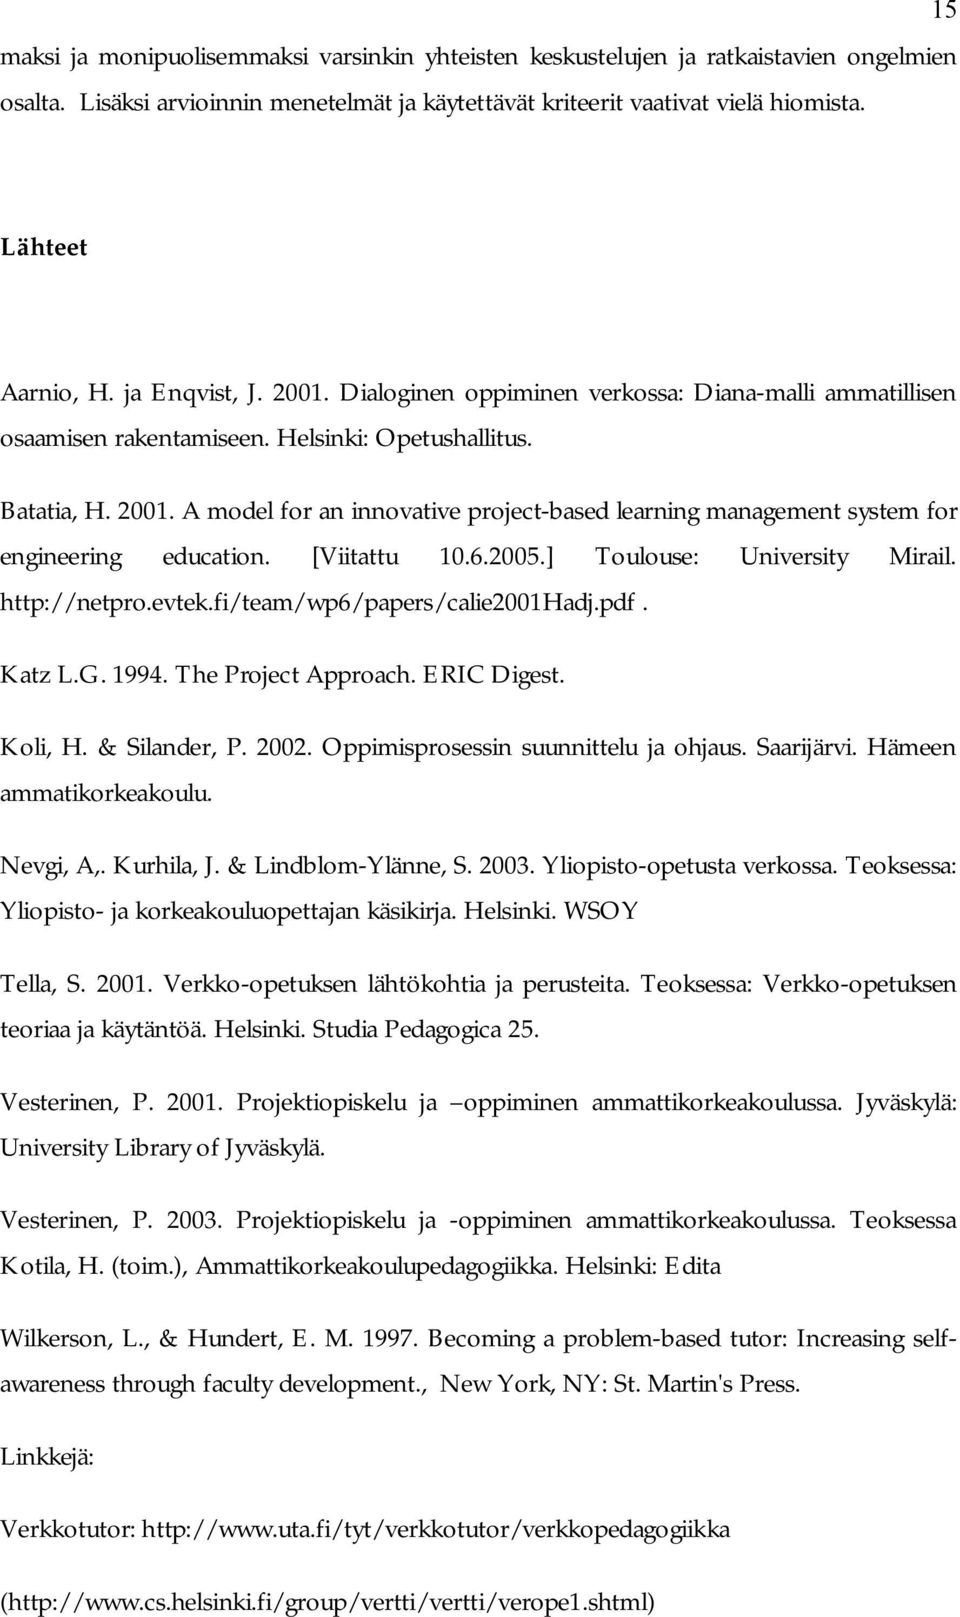 [Viitattu 10.6.2005.] Toulouse: University Mirail. http://netpro.evtek.fi/team/wp6/papers/calie2001hadj.pdf. Katz L.G. 1994. The Project Approach. ERIC Digest. Koli, H. & Silander, P. 2002.